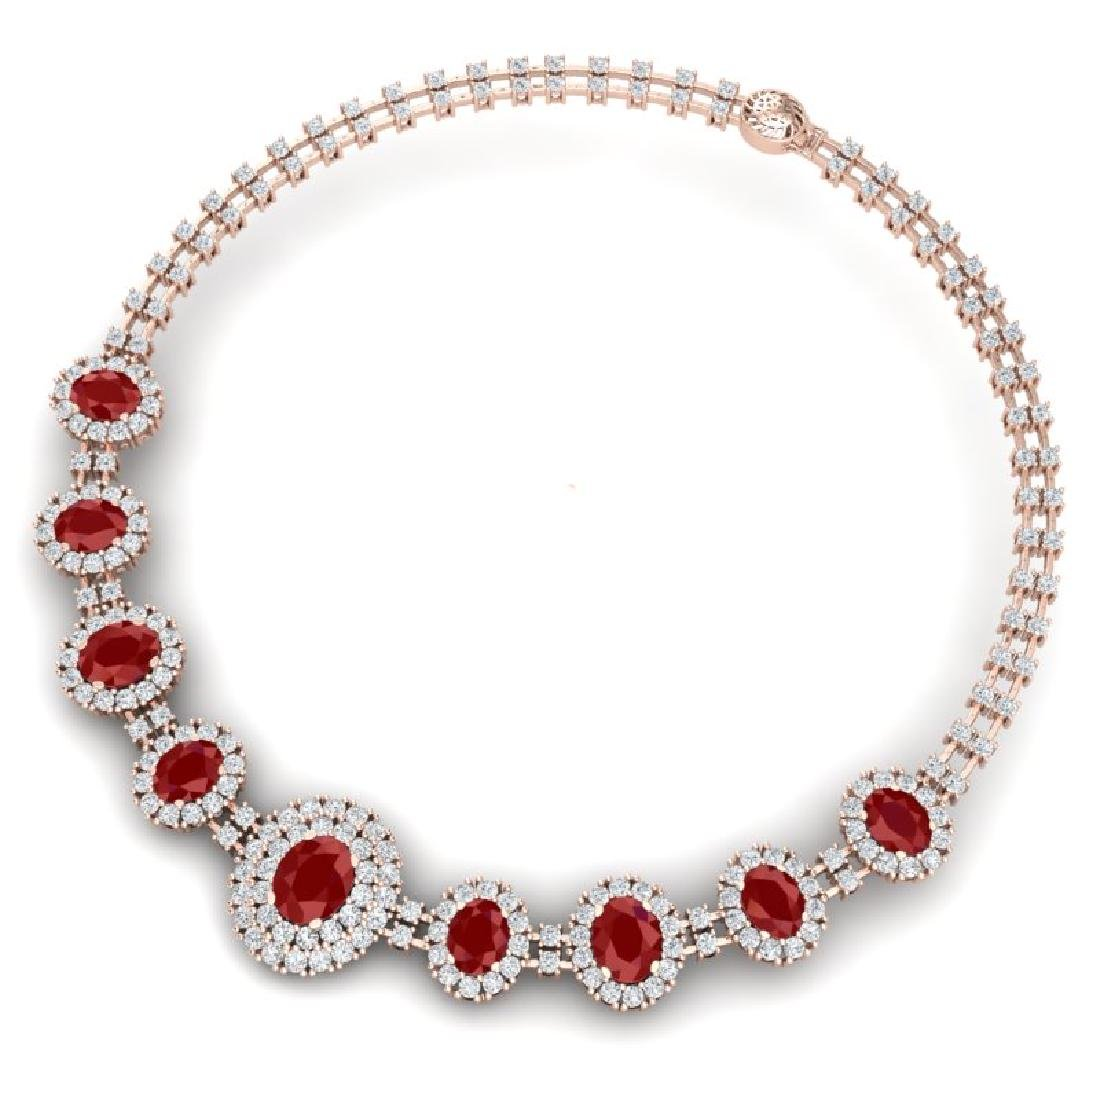 45.69 CTW Royalty Ruby & VS Diamond Necklace 18K Rose - 3